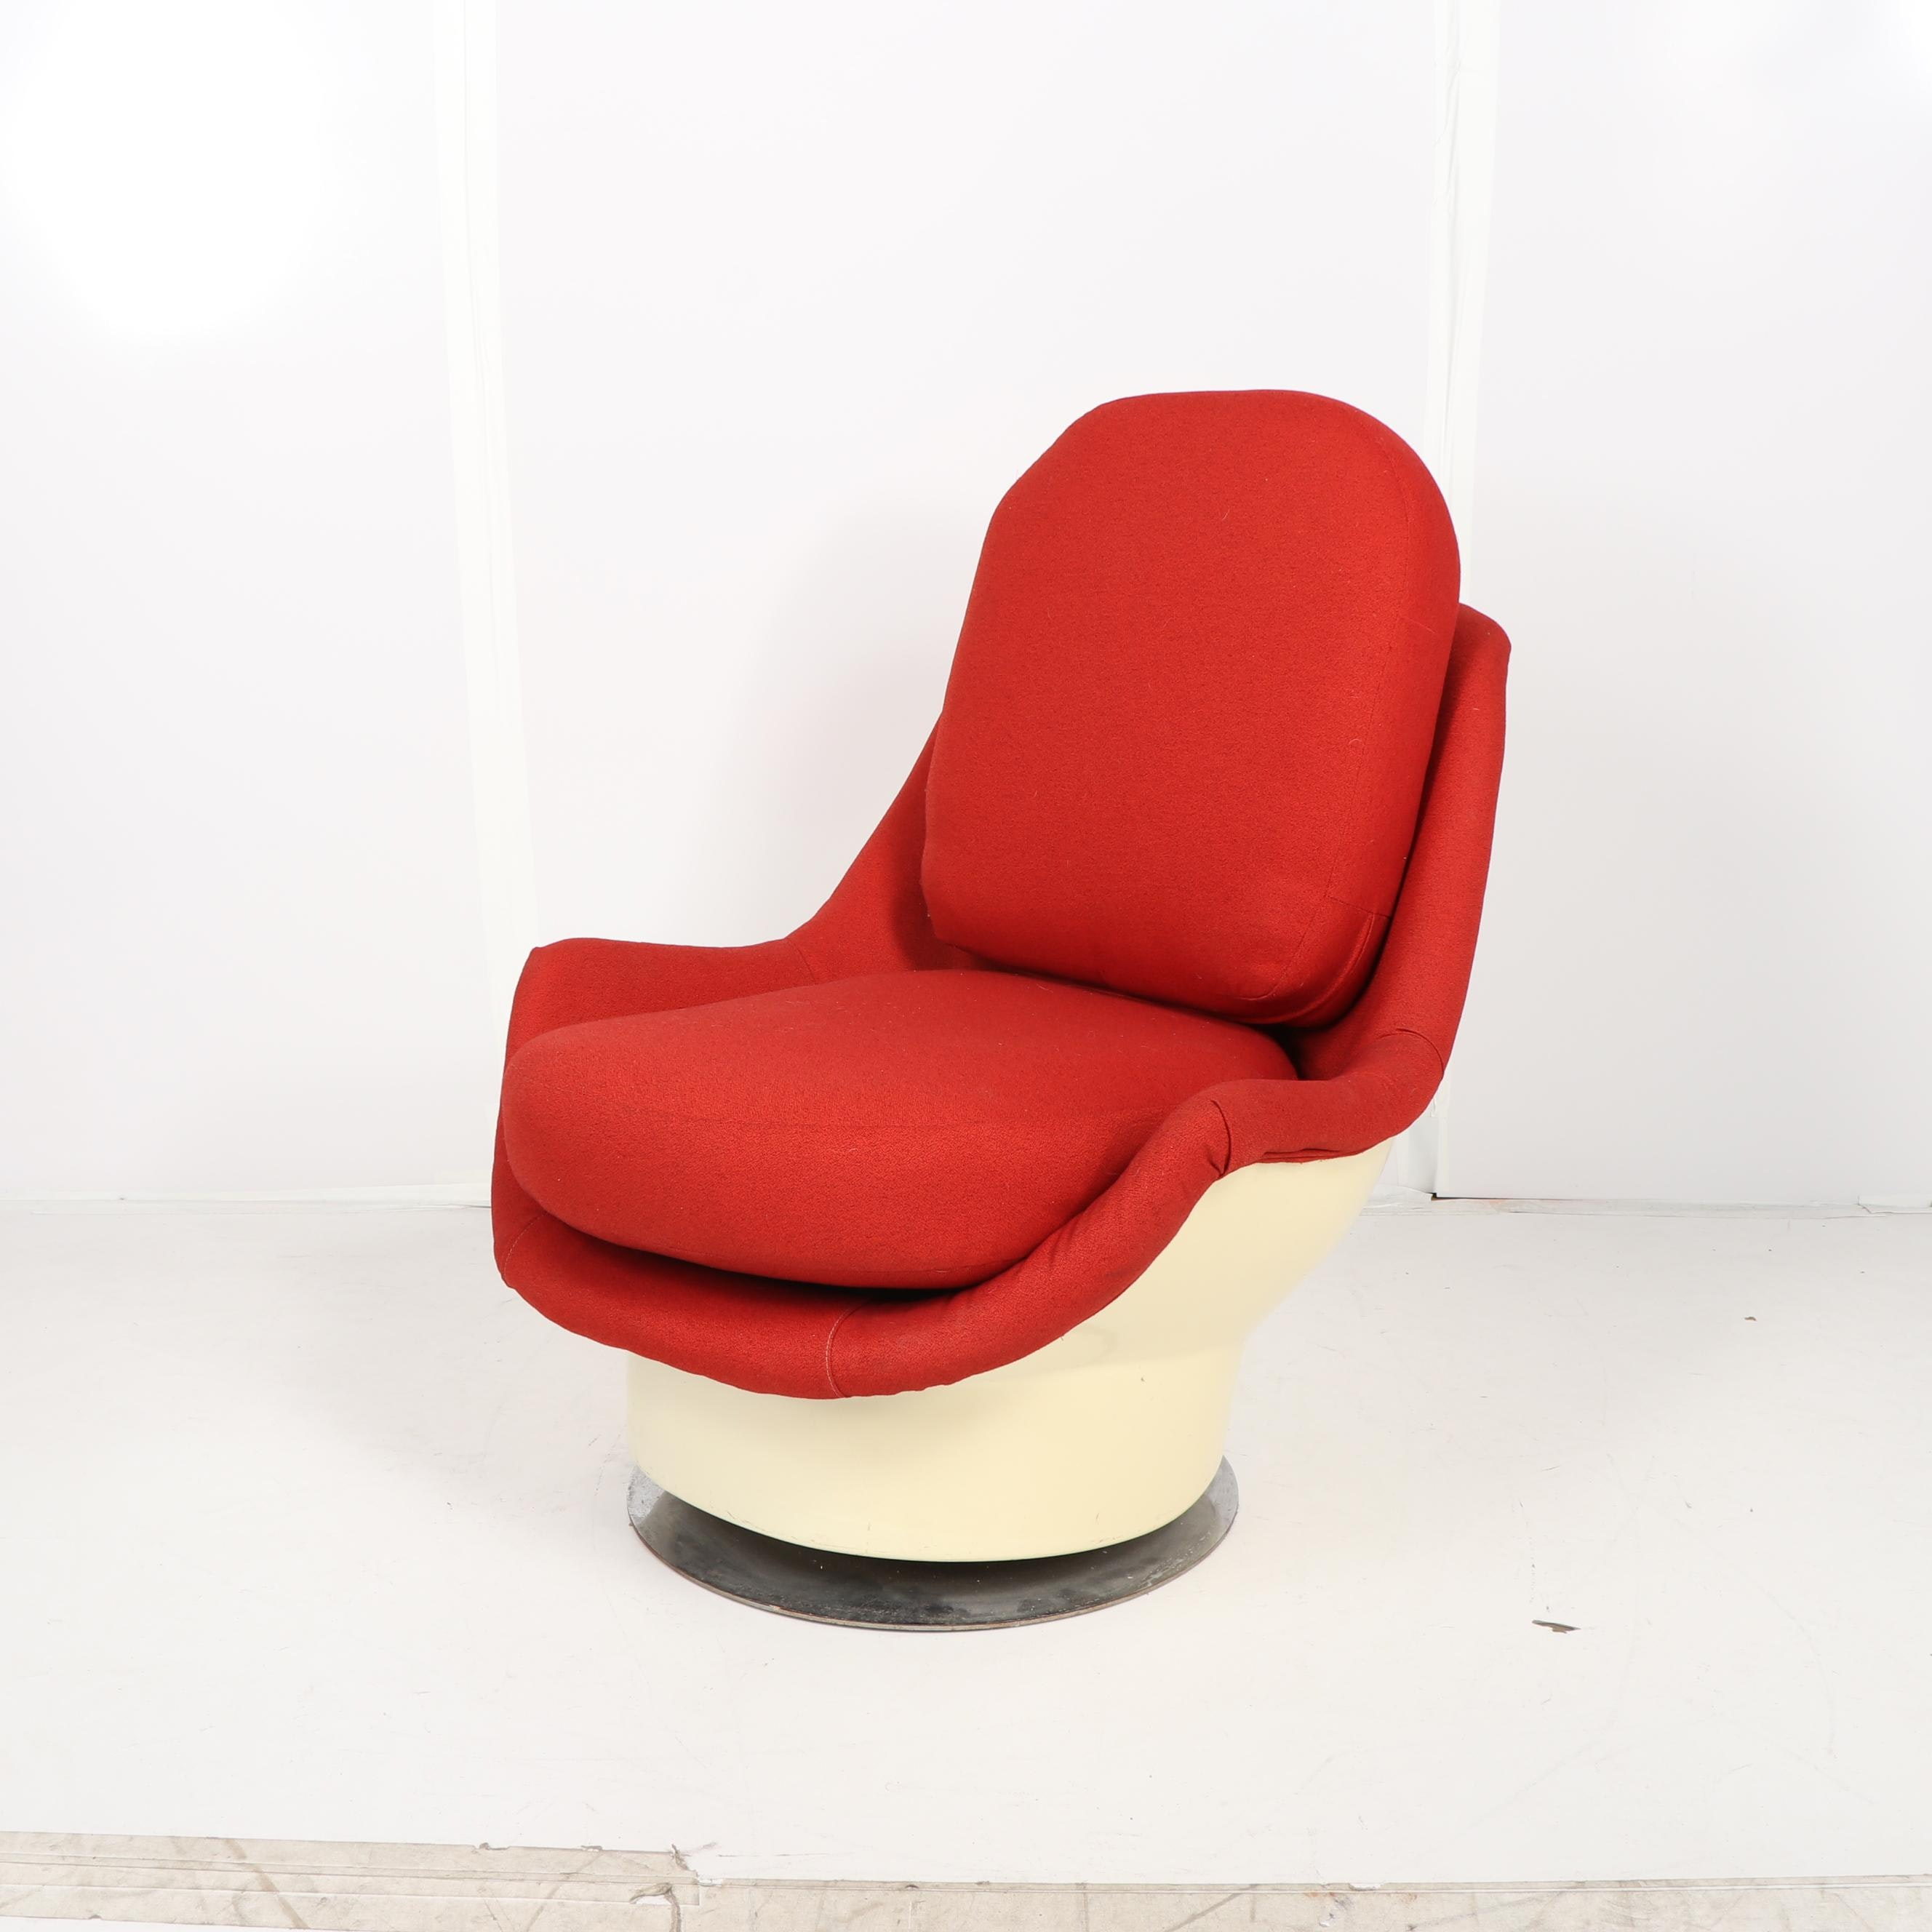 Mid Century Modern Style Molded Plastic Held Style Chair, 20th Century